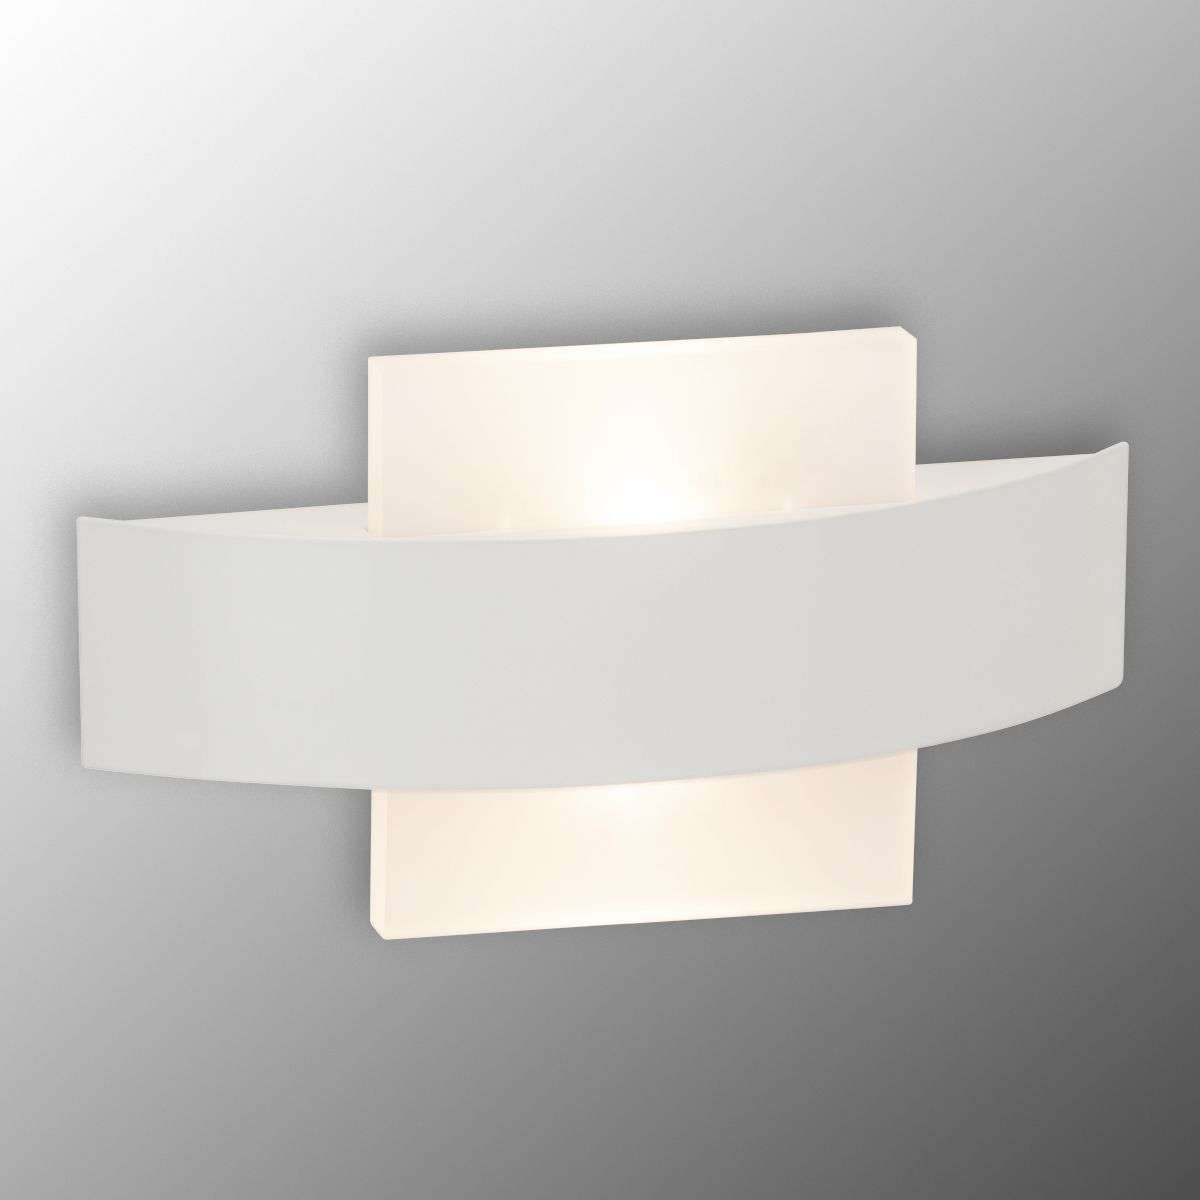 Solution LED wall light, square diffuser-1509033-31